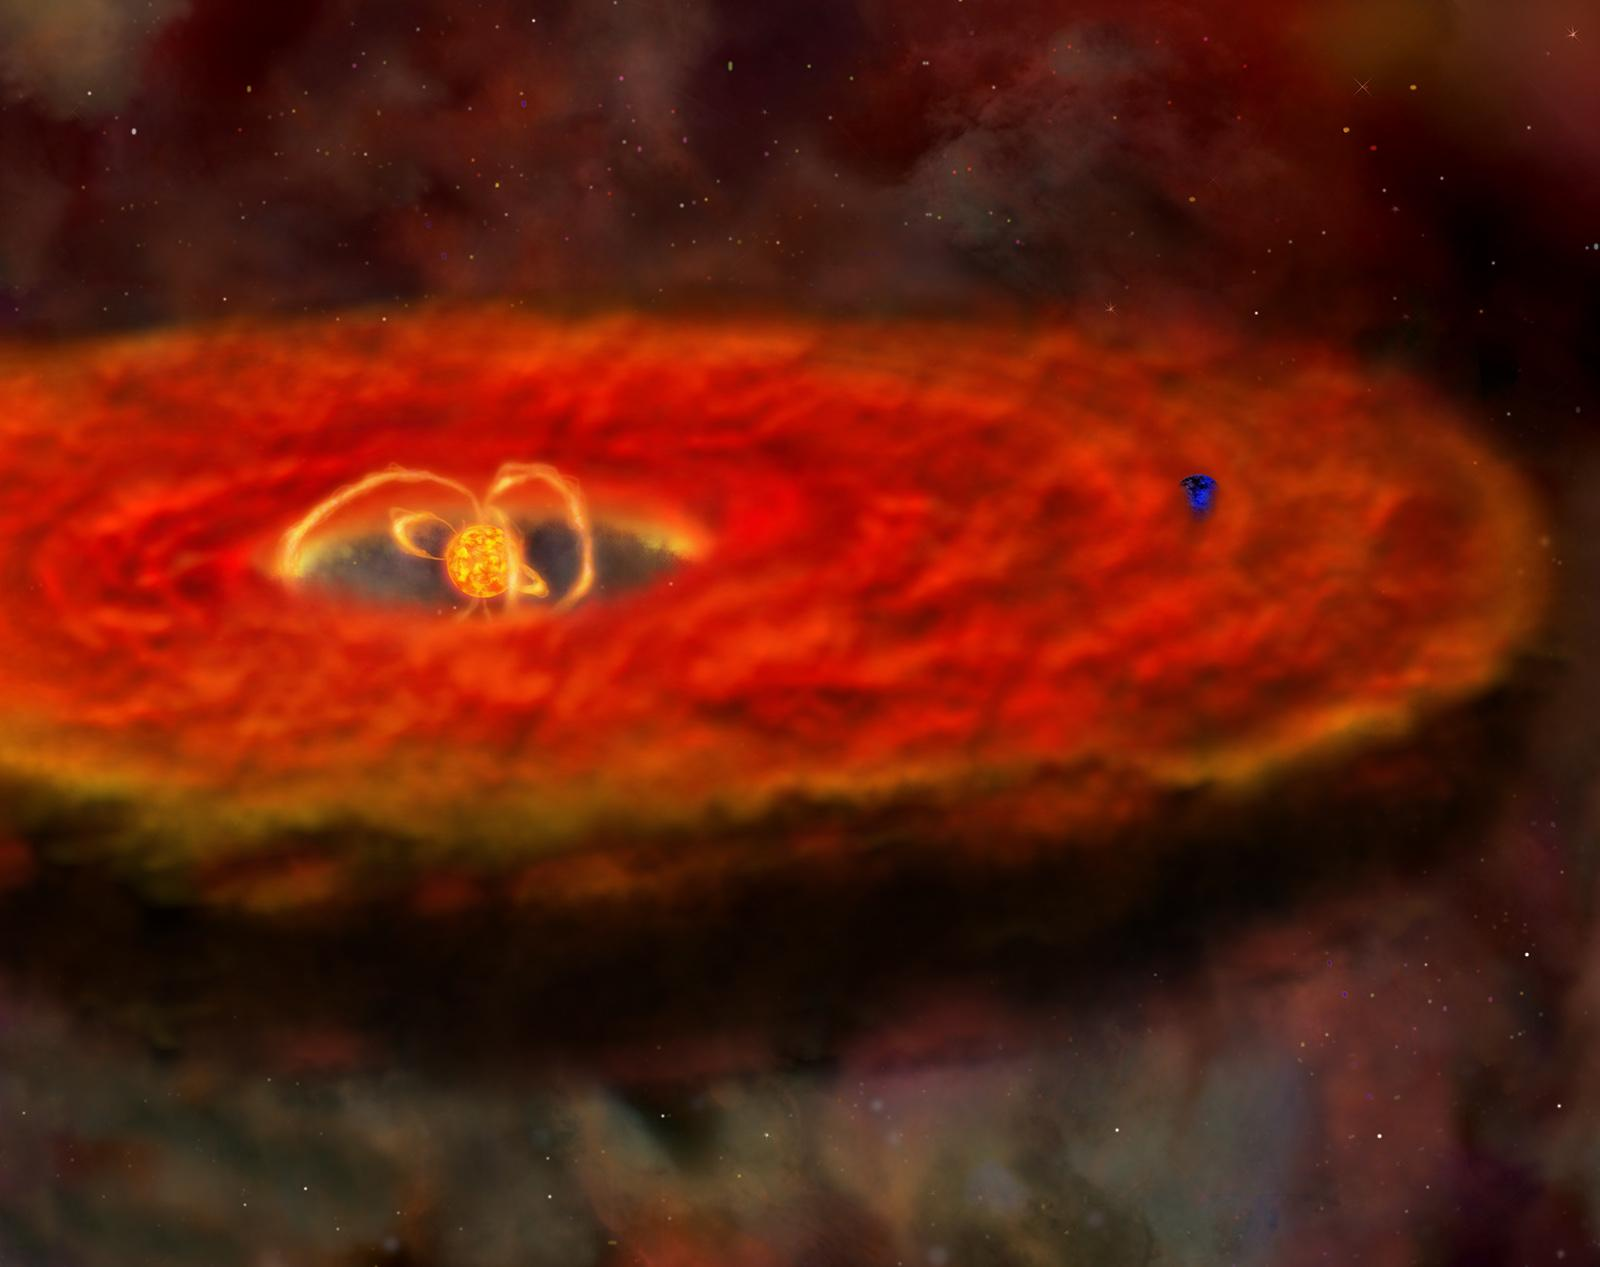 Turbulent Protoplanetary Disk